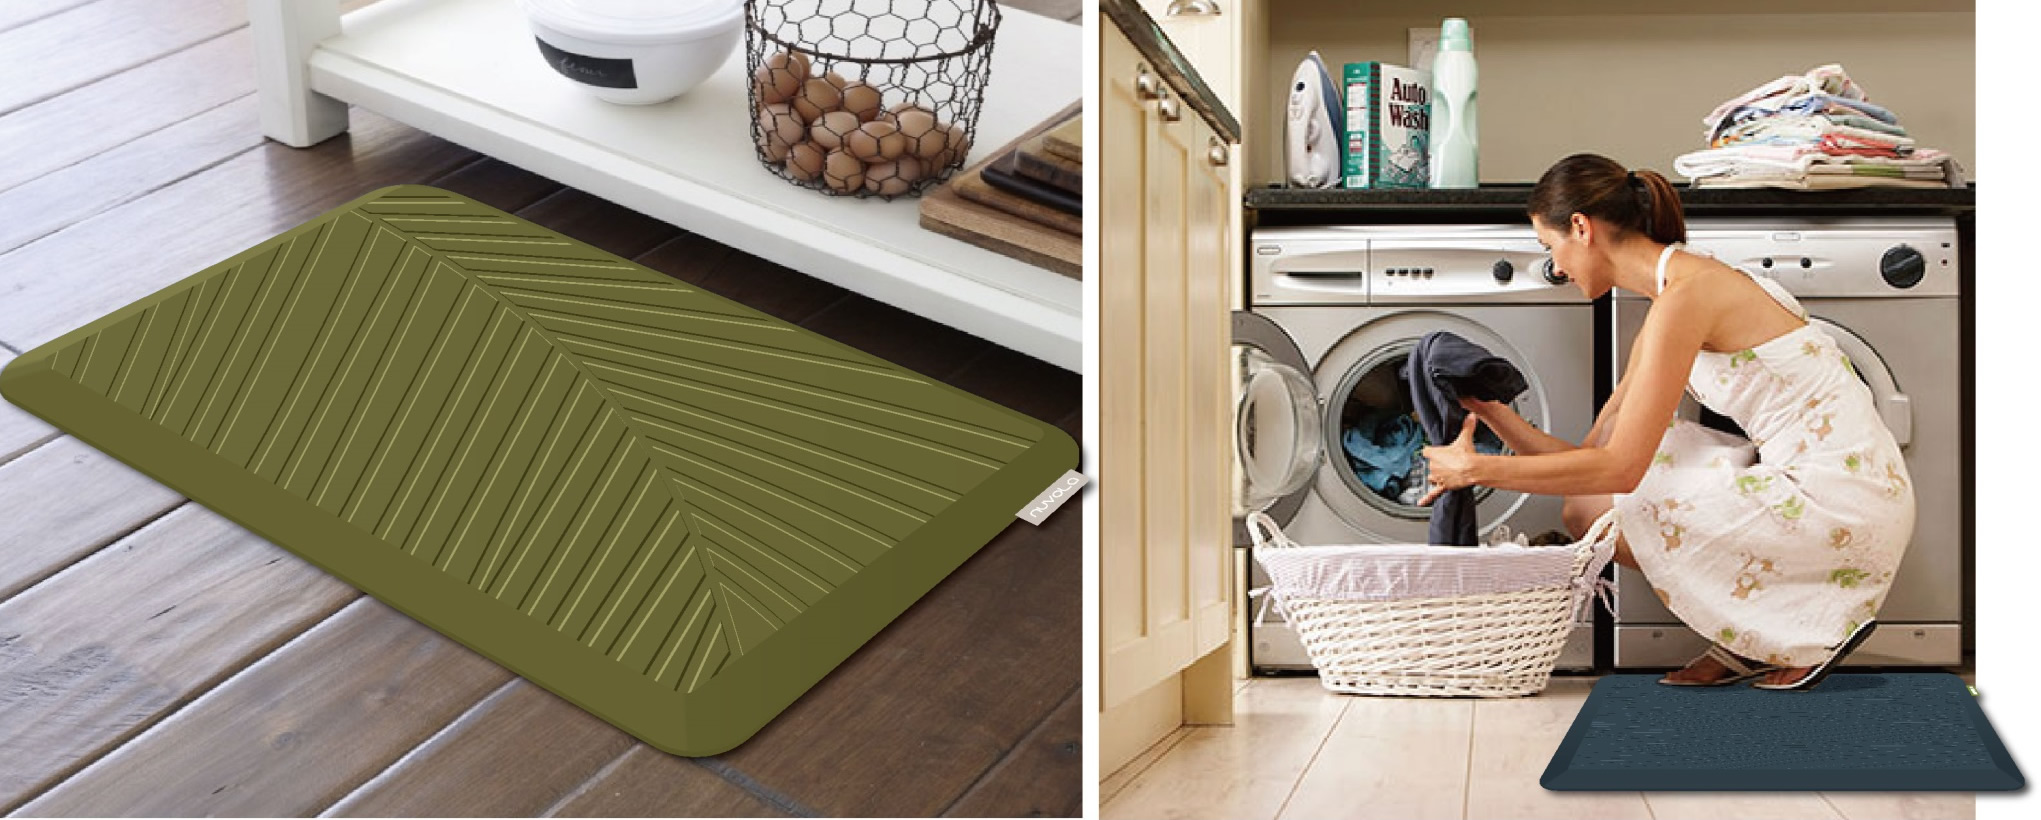 portfolios decorative kitchen floor mats Portfolio